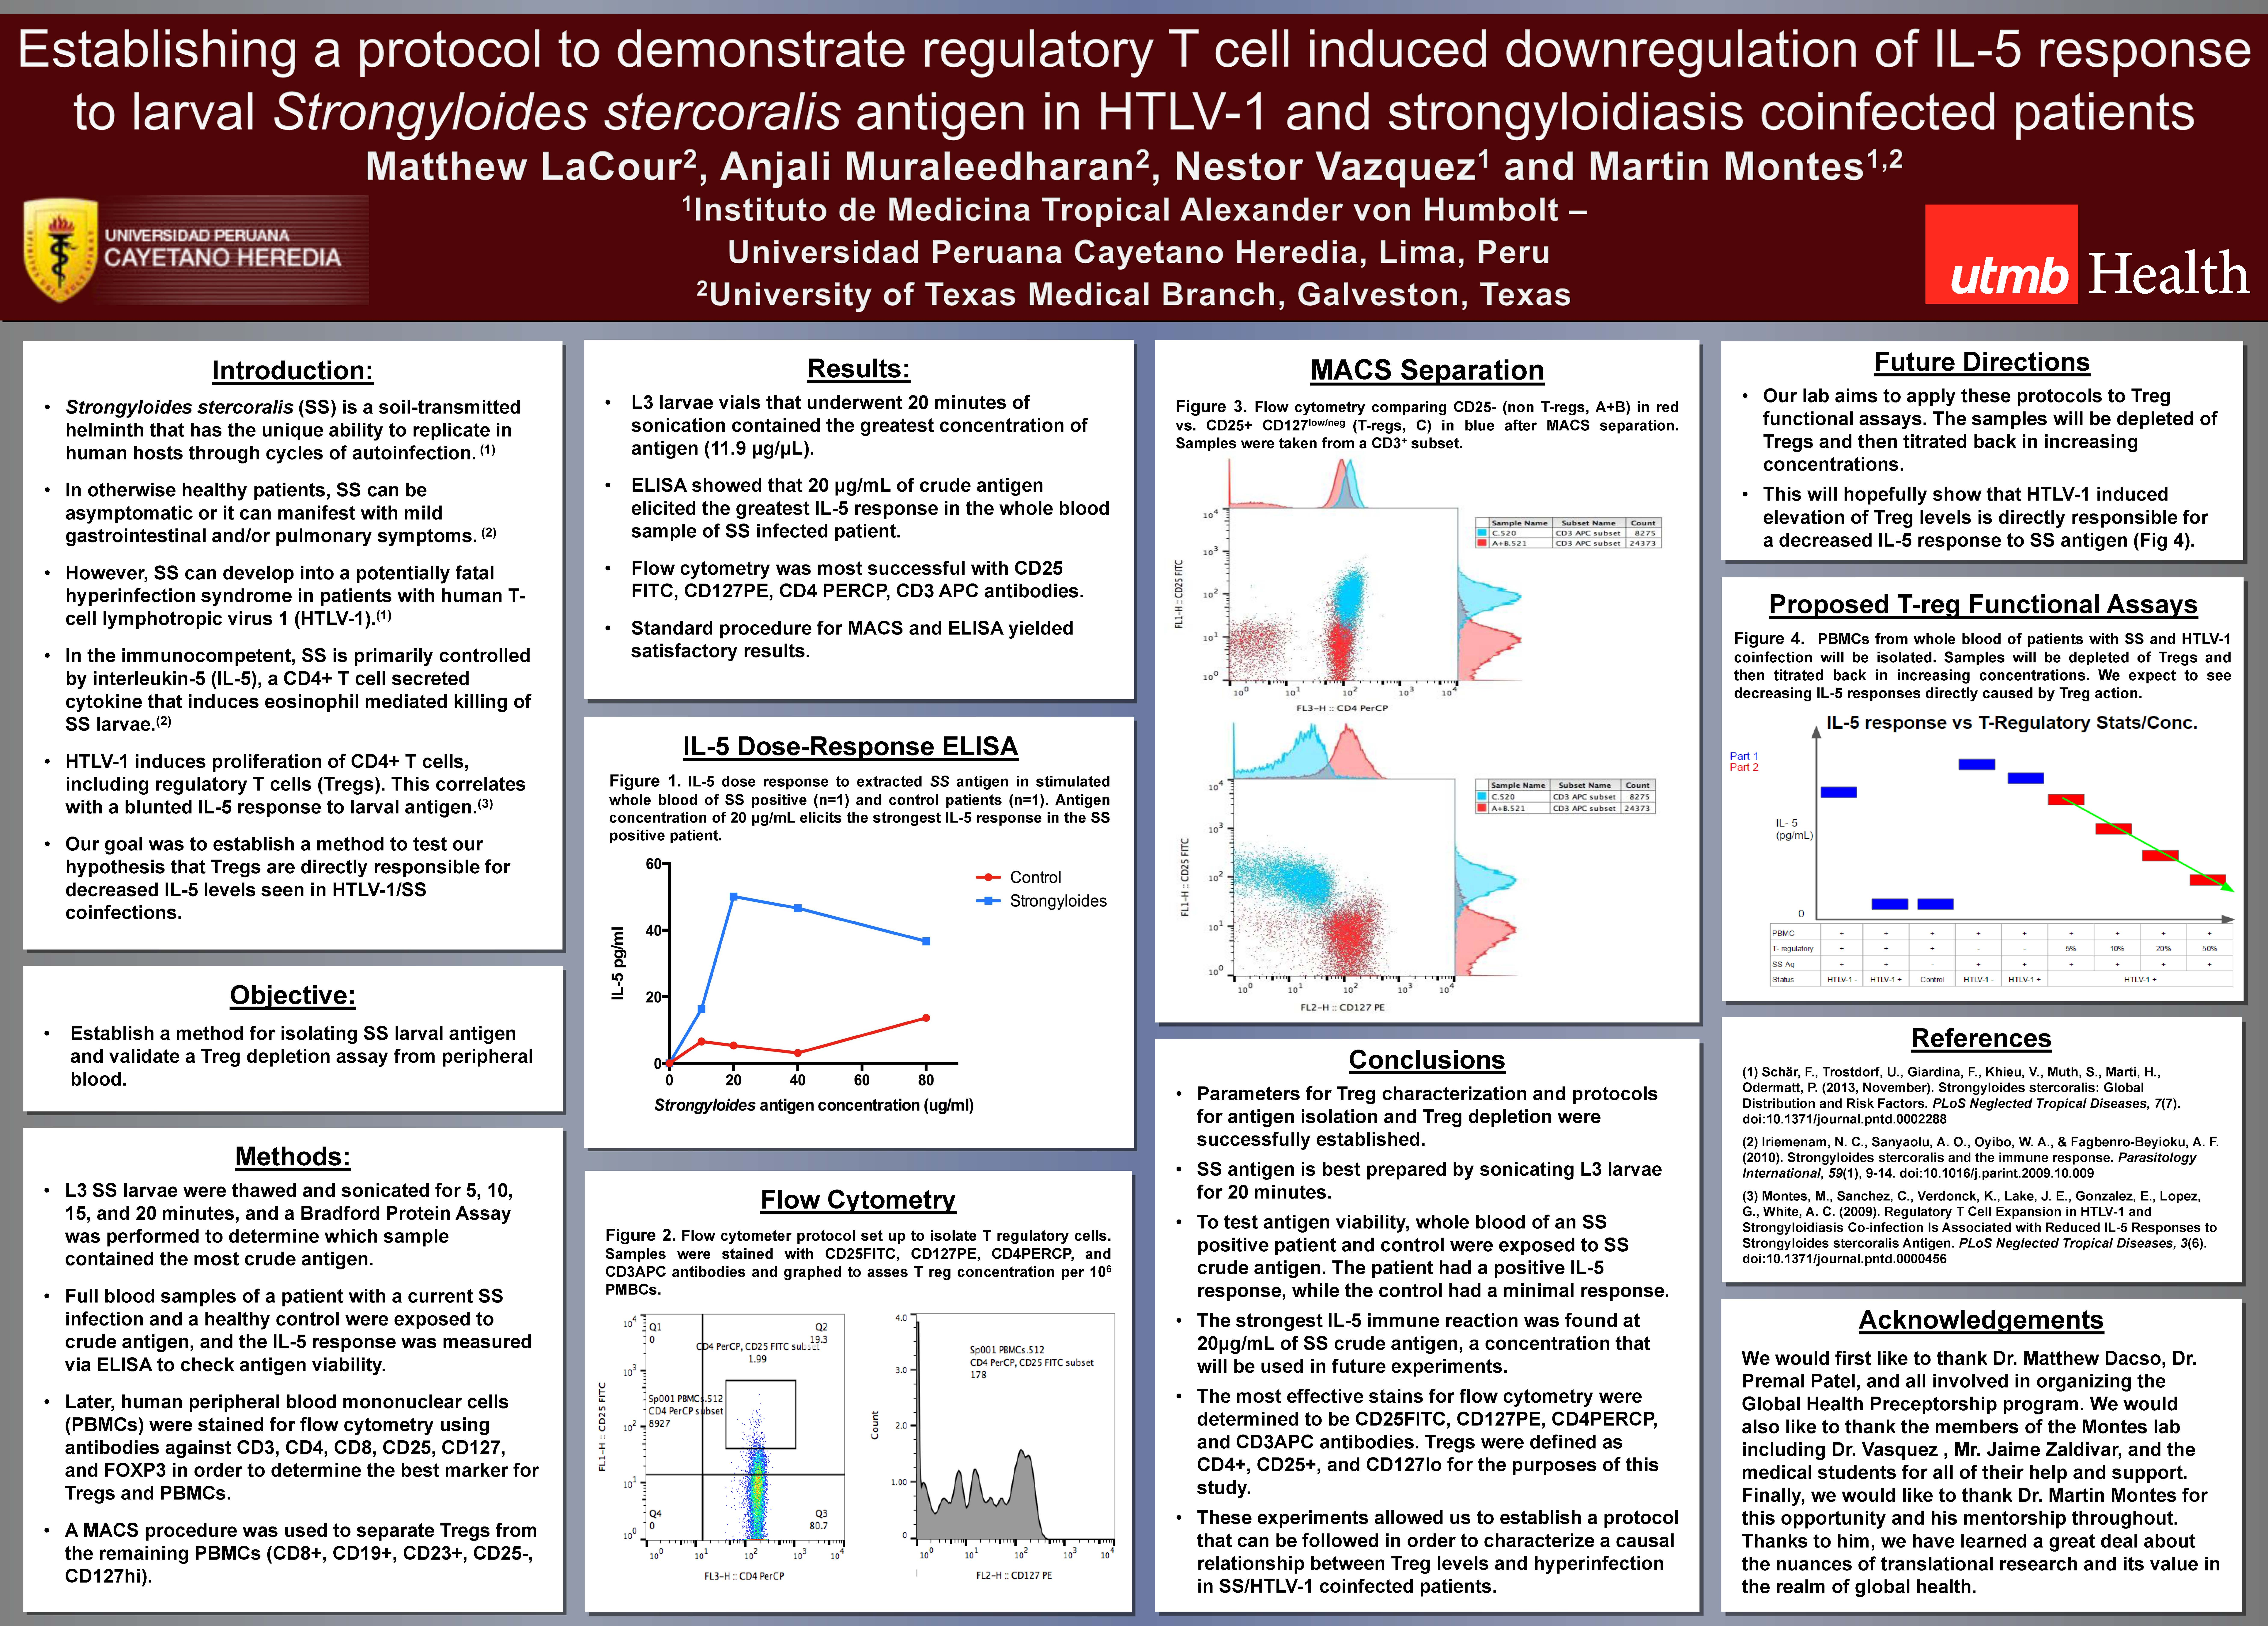 LaCour, Protocol T cell Downregulation